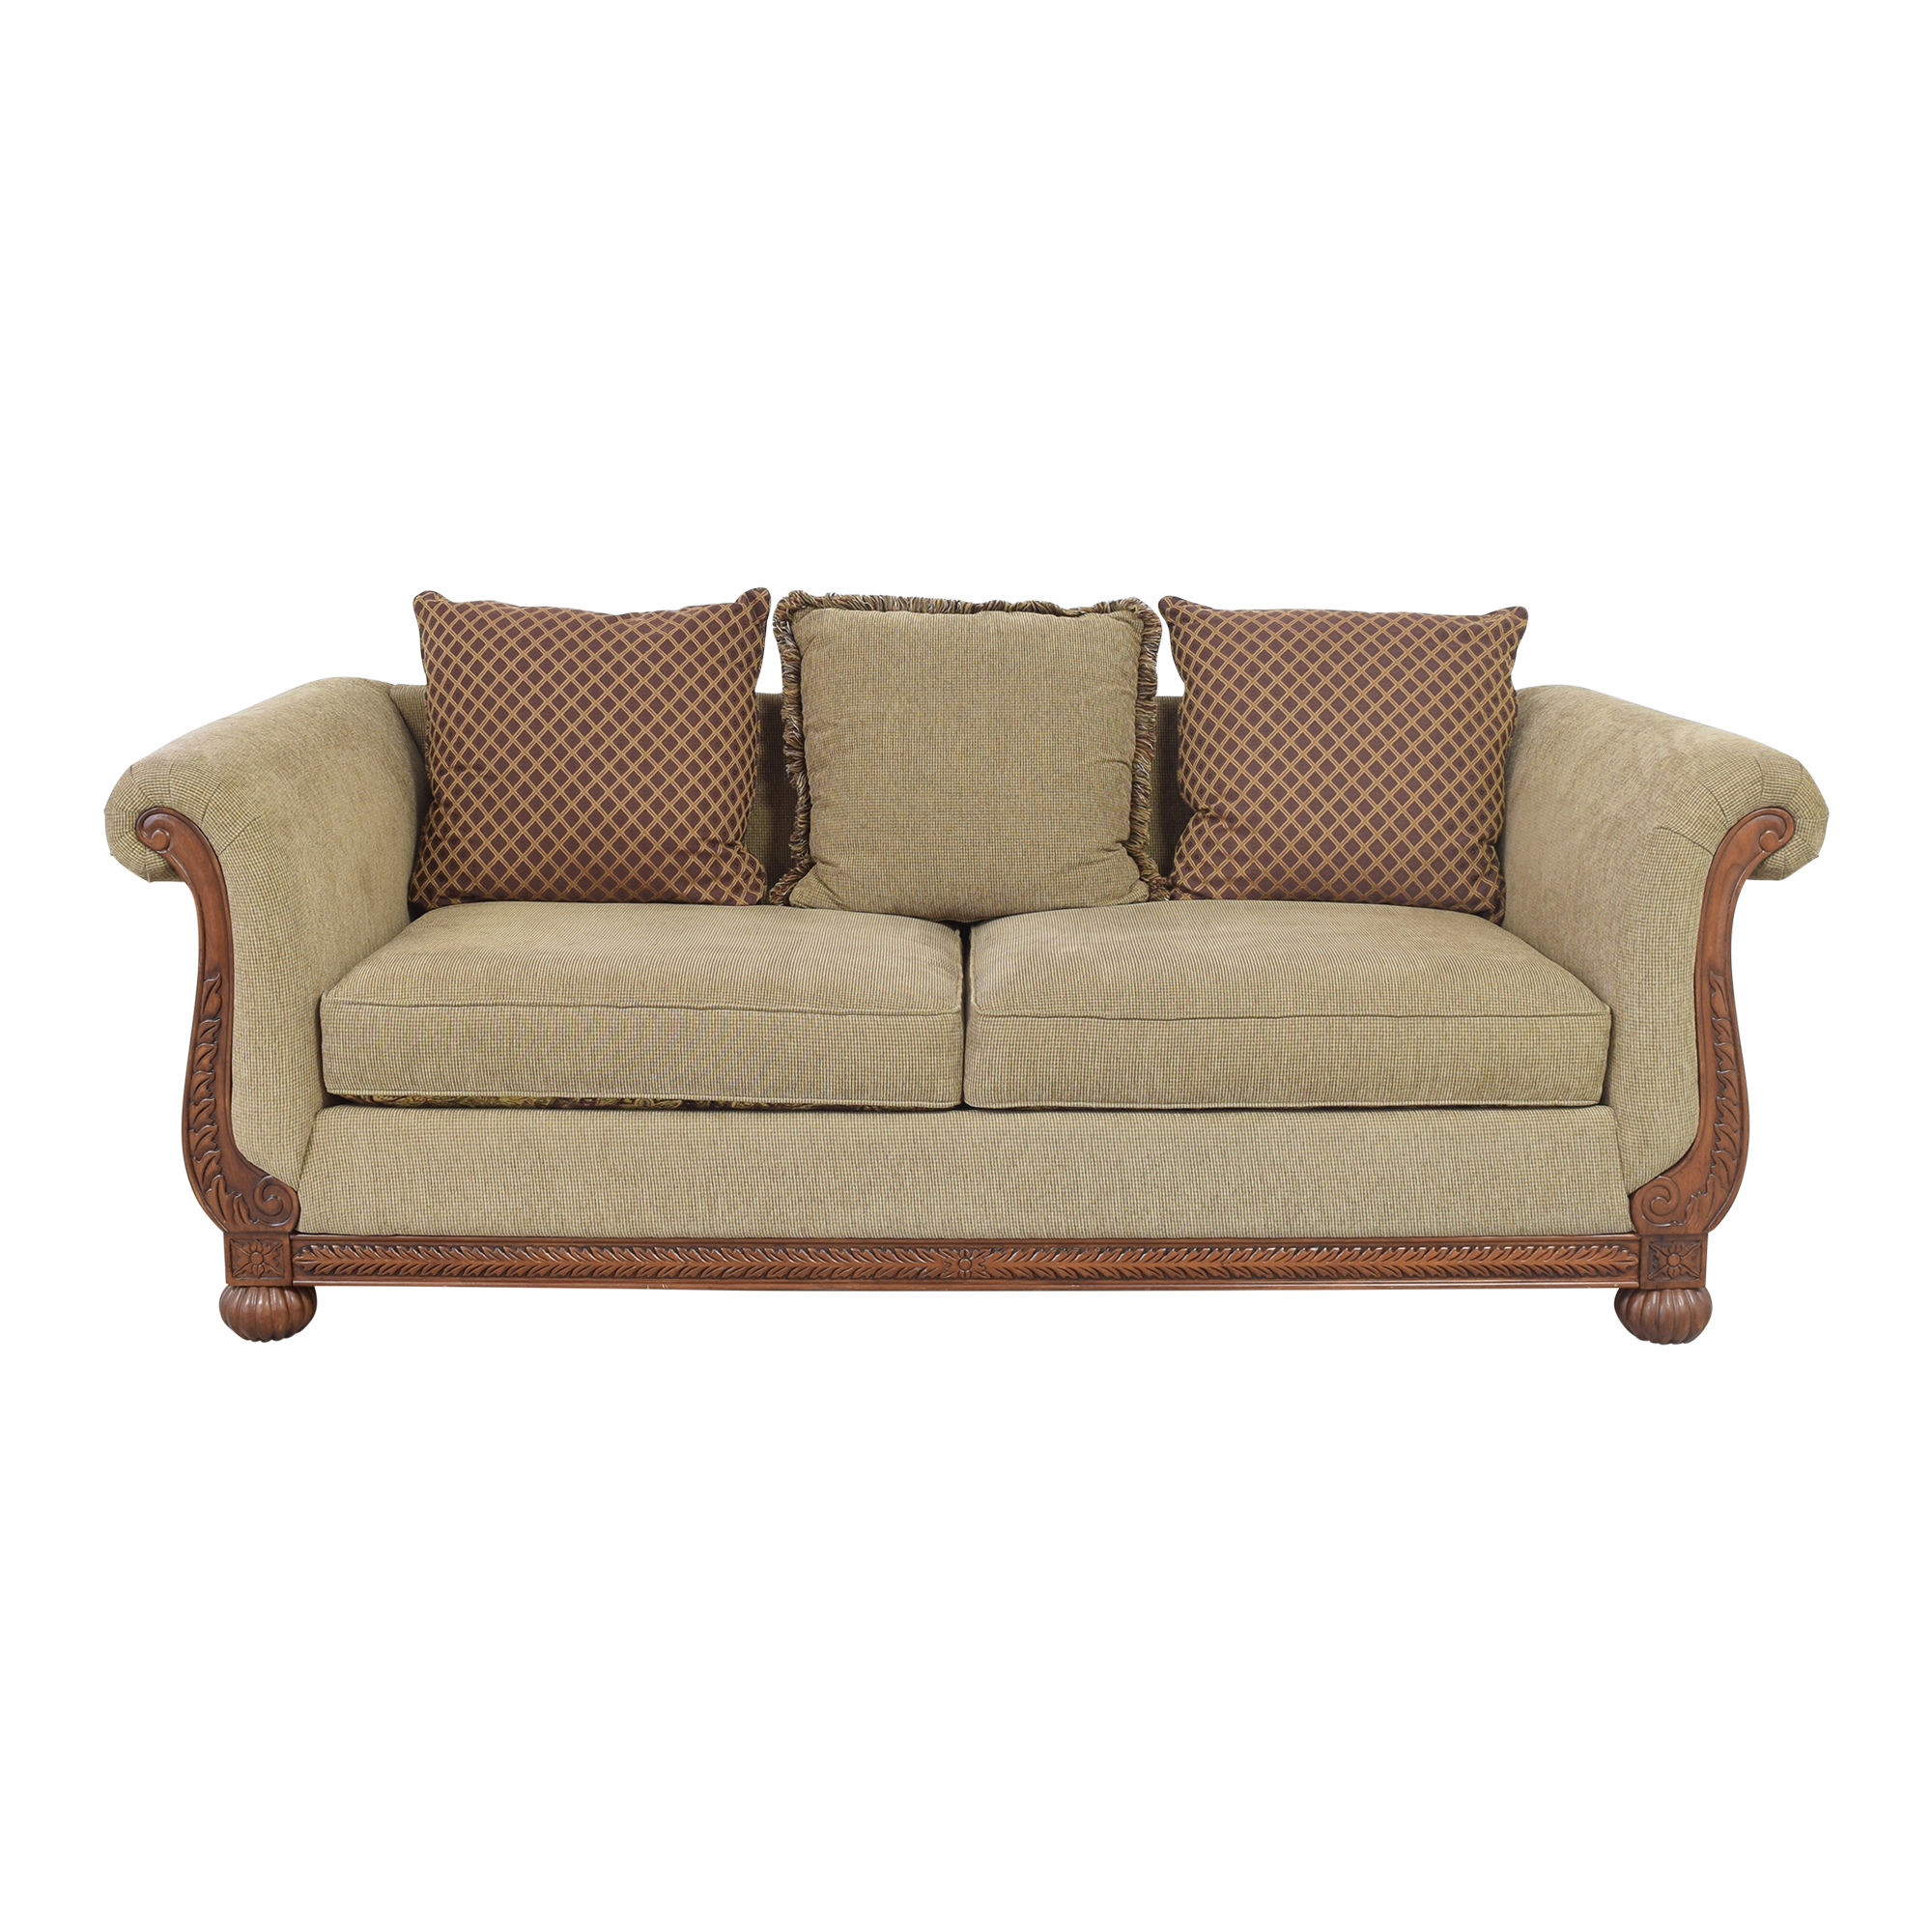 buy HM Richards Furniture HM Richards Furniture Traditional Roll Arm Sofa online